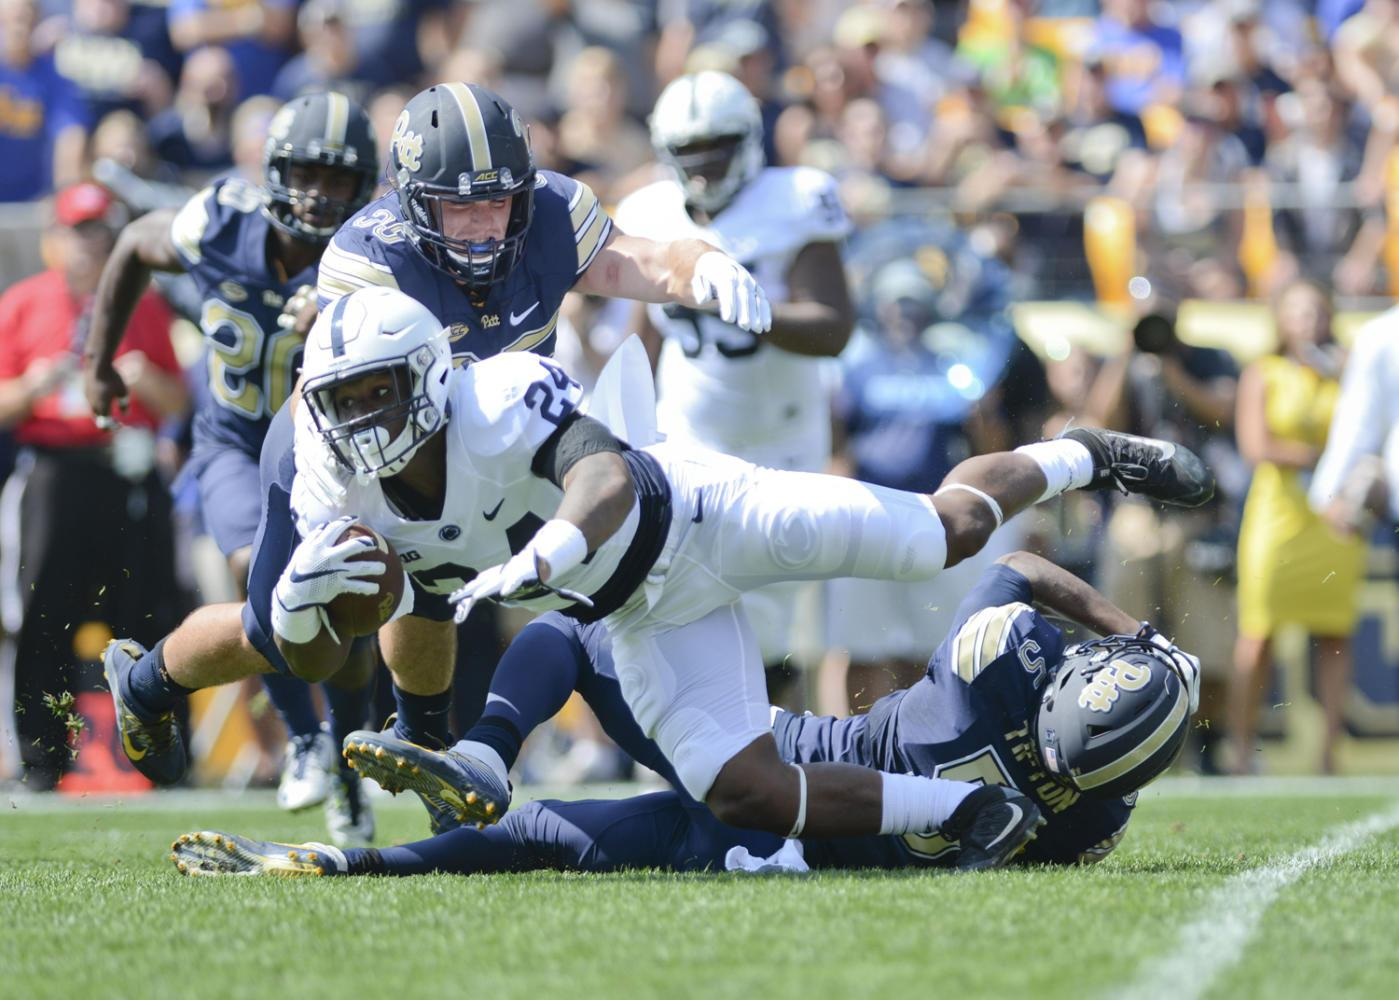 Pitt's Tre Tipton (5) and George Aston (35) tackle Nittany Lions running back Miles Sanders during the Panthers' 42-39 win last season. (Photo by John Hamilton | Managing Editor)